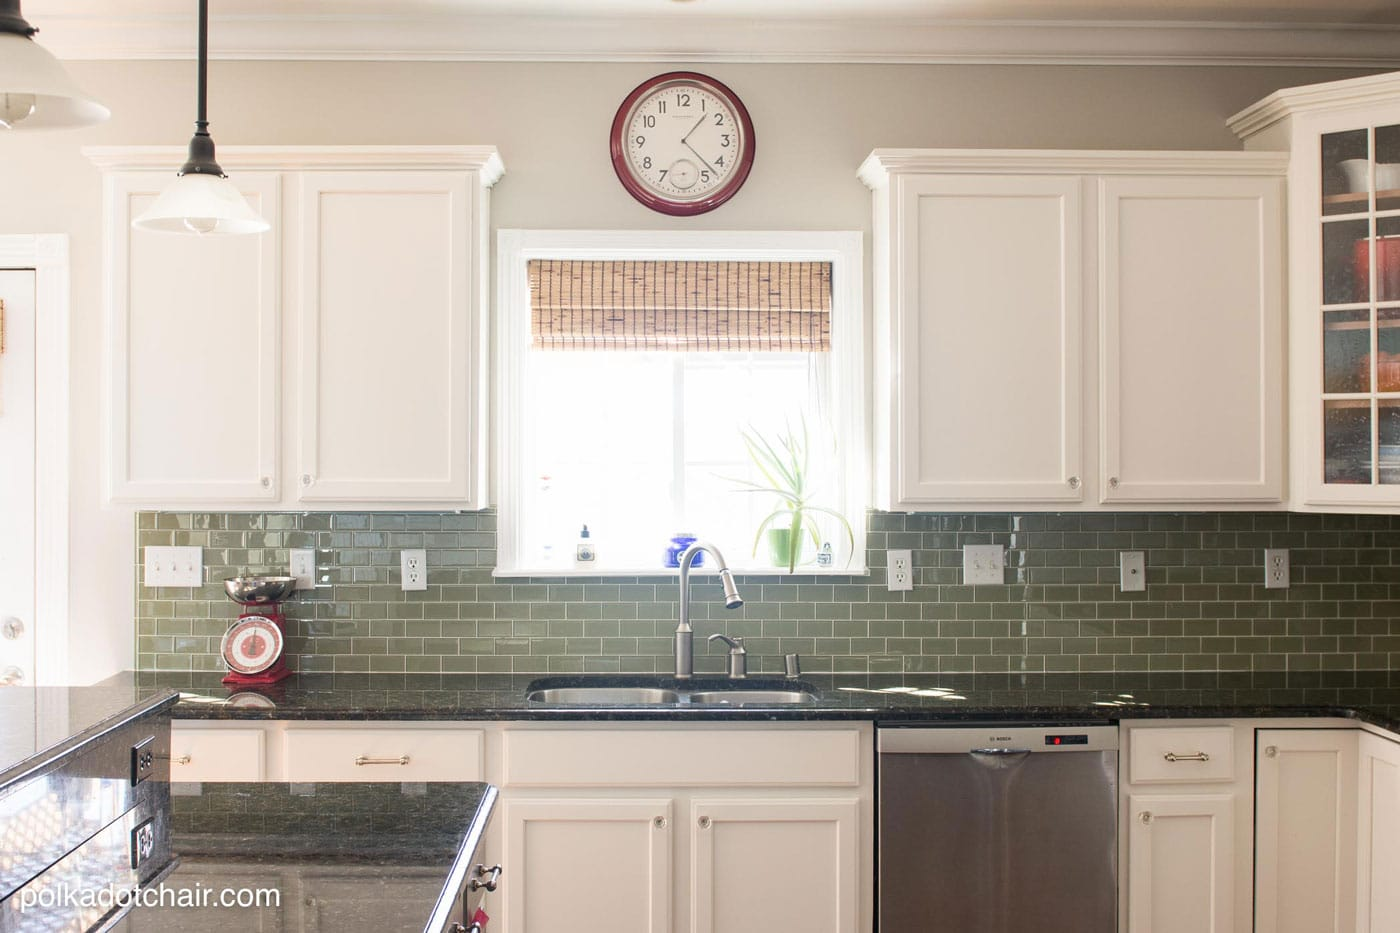 painted kitchen cabinet ideas kitchen makeover reveal spray painting kitchen cabinets Before and After Photos of a Kitchen that had it s Cabinets Painted White lots of